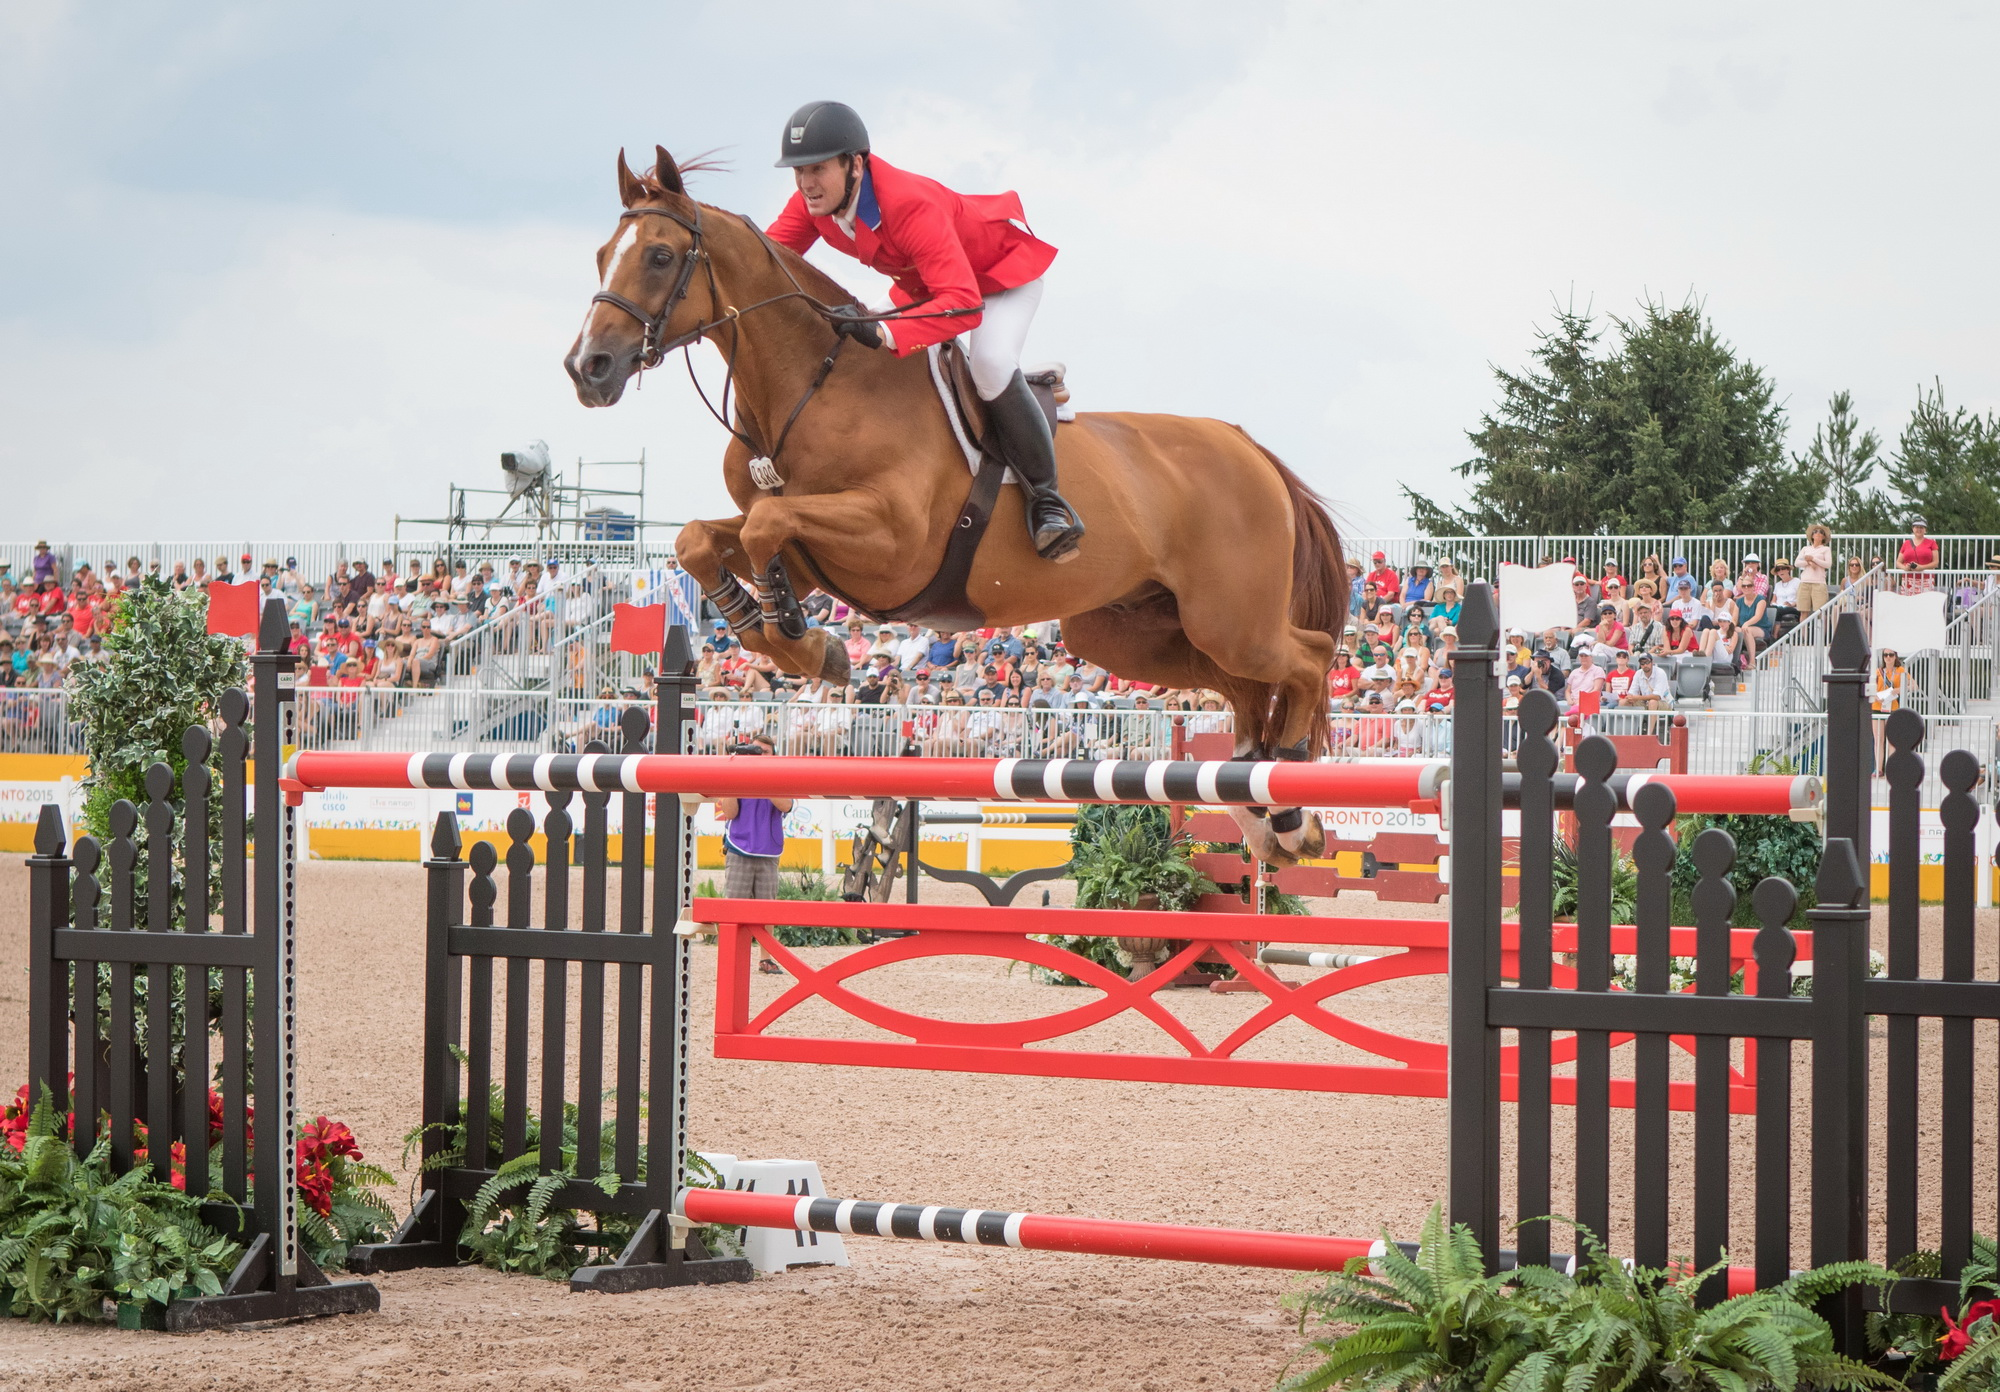 Two-time Olympic gold medallist McLain Ward (USA), the new world number one in the Longines Rankings, is pictured here with stallion Rothchild at the OLG Caledon Pan Am Equestrian Park during the Toronto 2015 Pan American Games in Caledon, Ontario (CAN) (FEI/Eric Knoll)